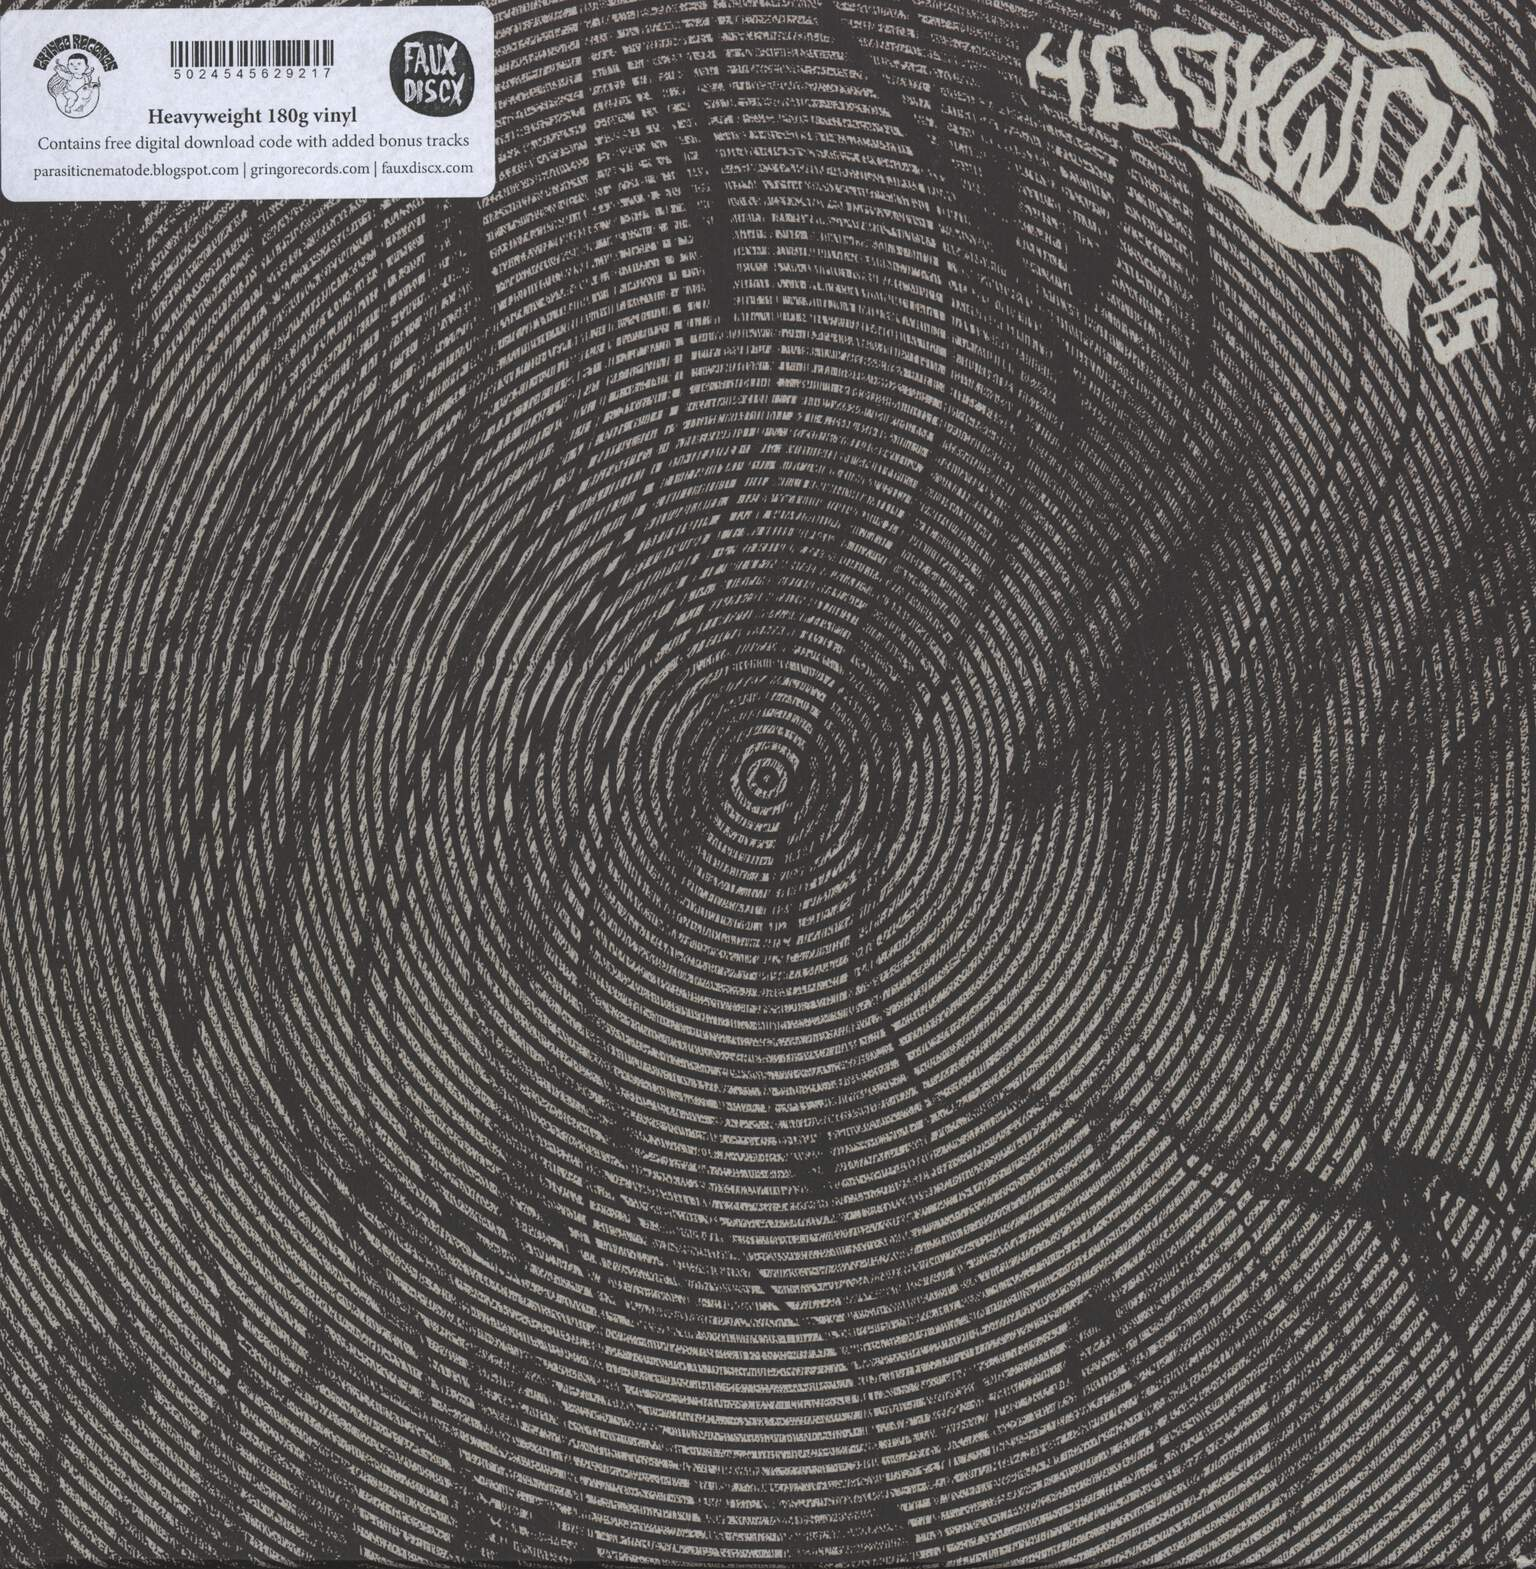 "Hookworms: Hookworms, 12"" Maxi Single (Vinyl)"